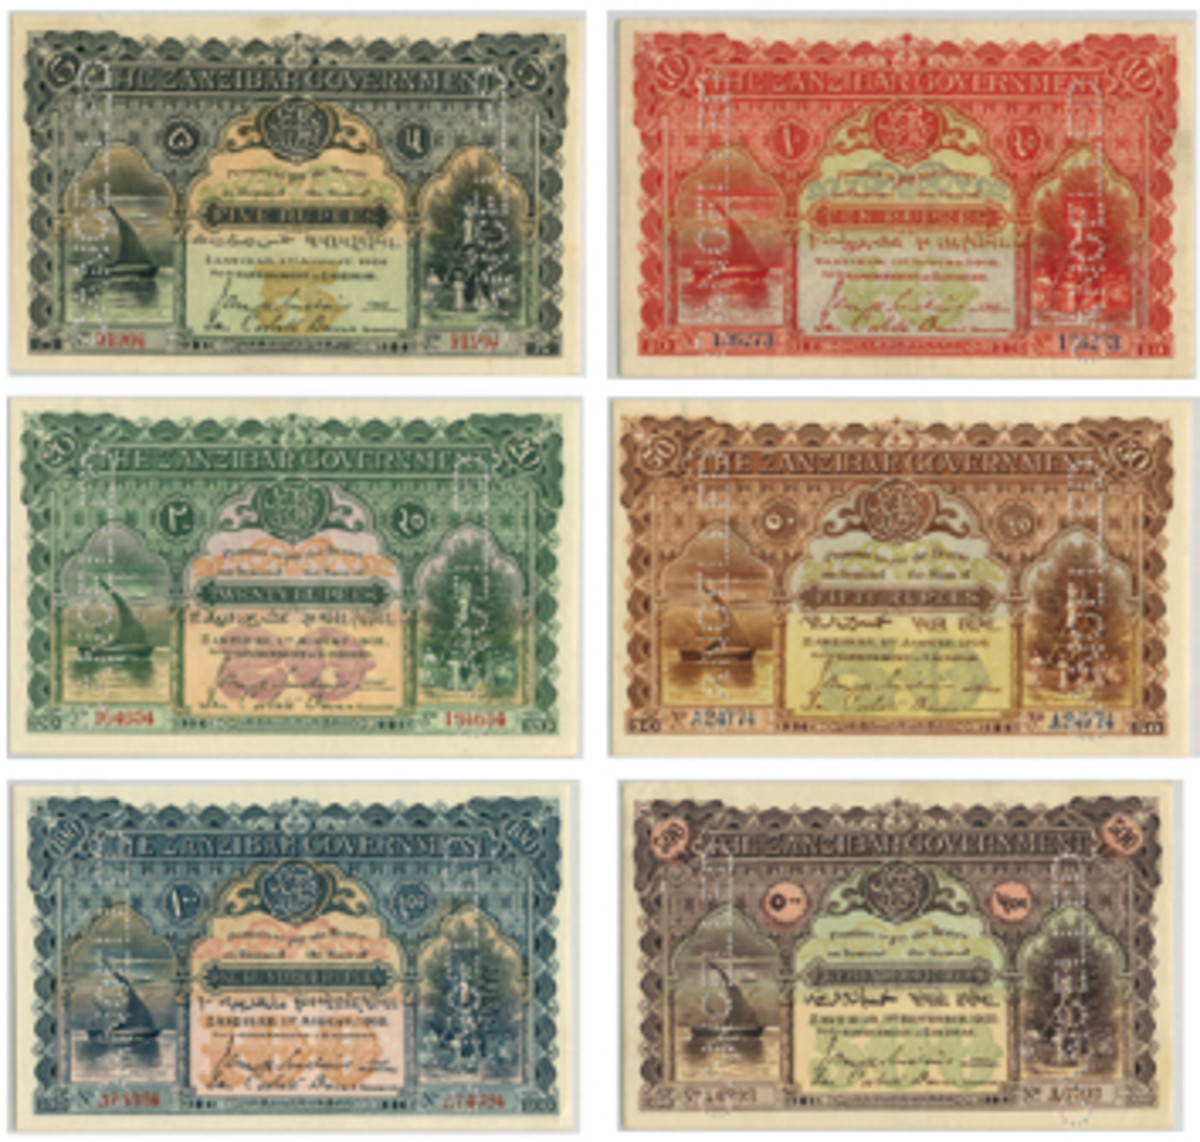 The complete Waterlow-printed Zanzibar set sold in September. (Images courtesy and © Spink London)